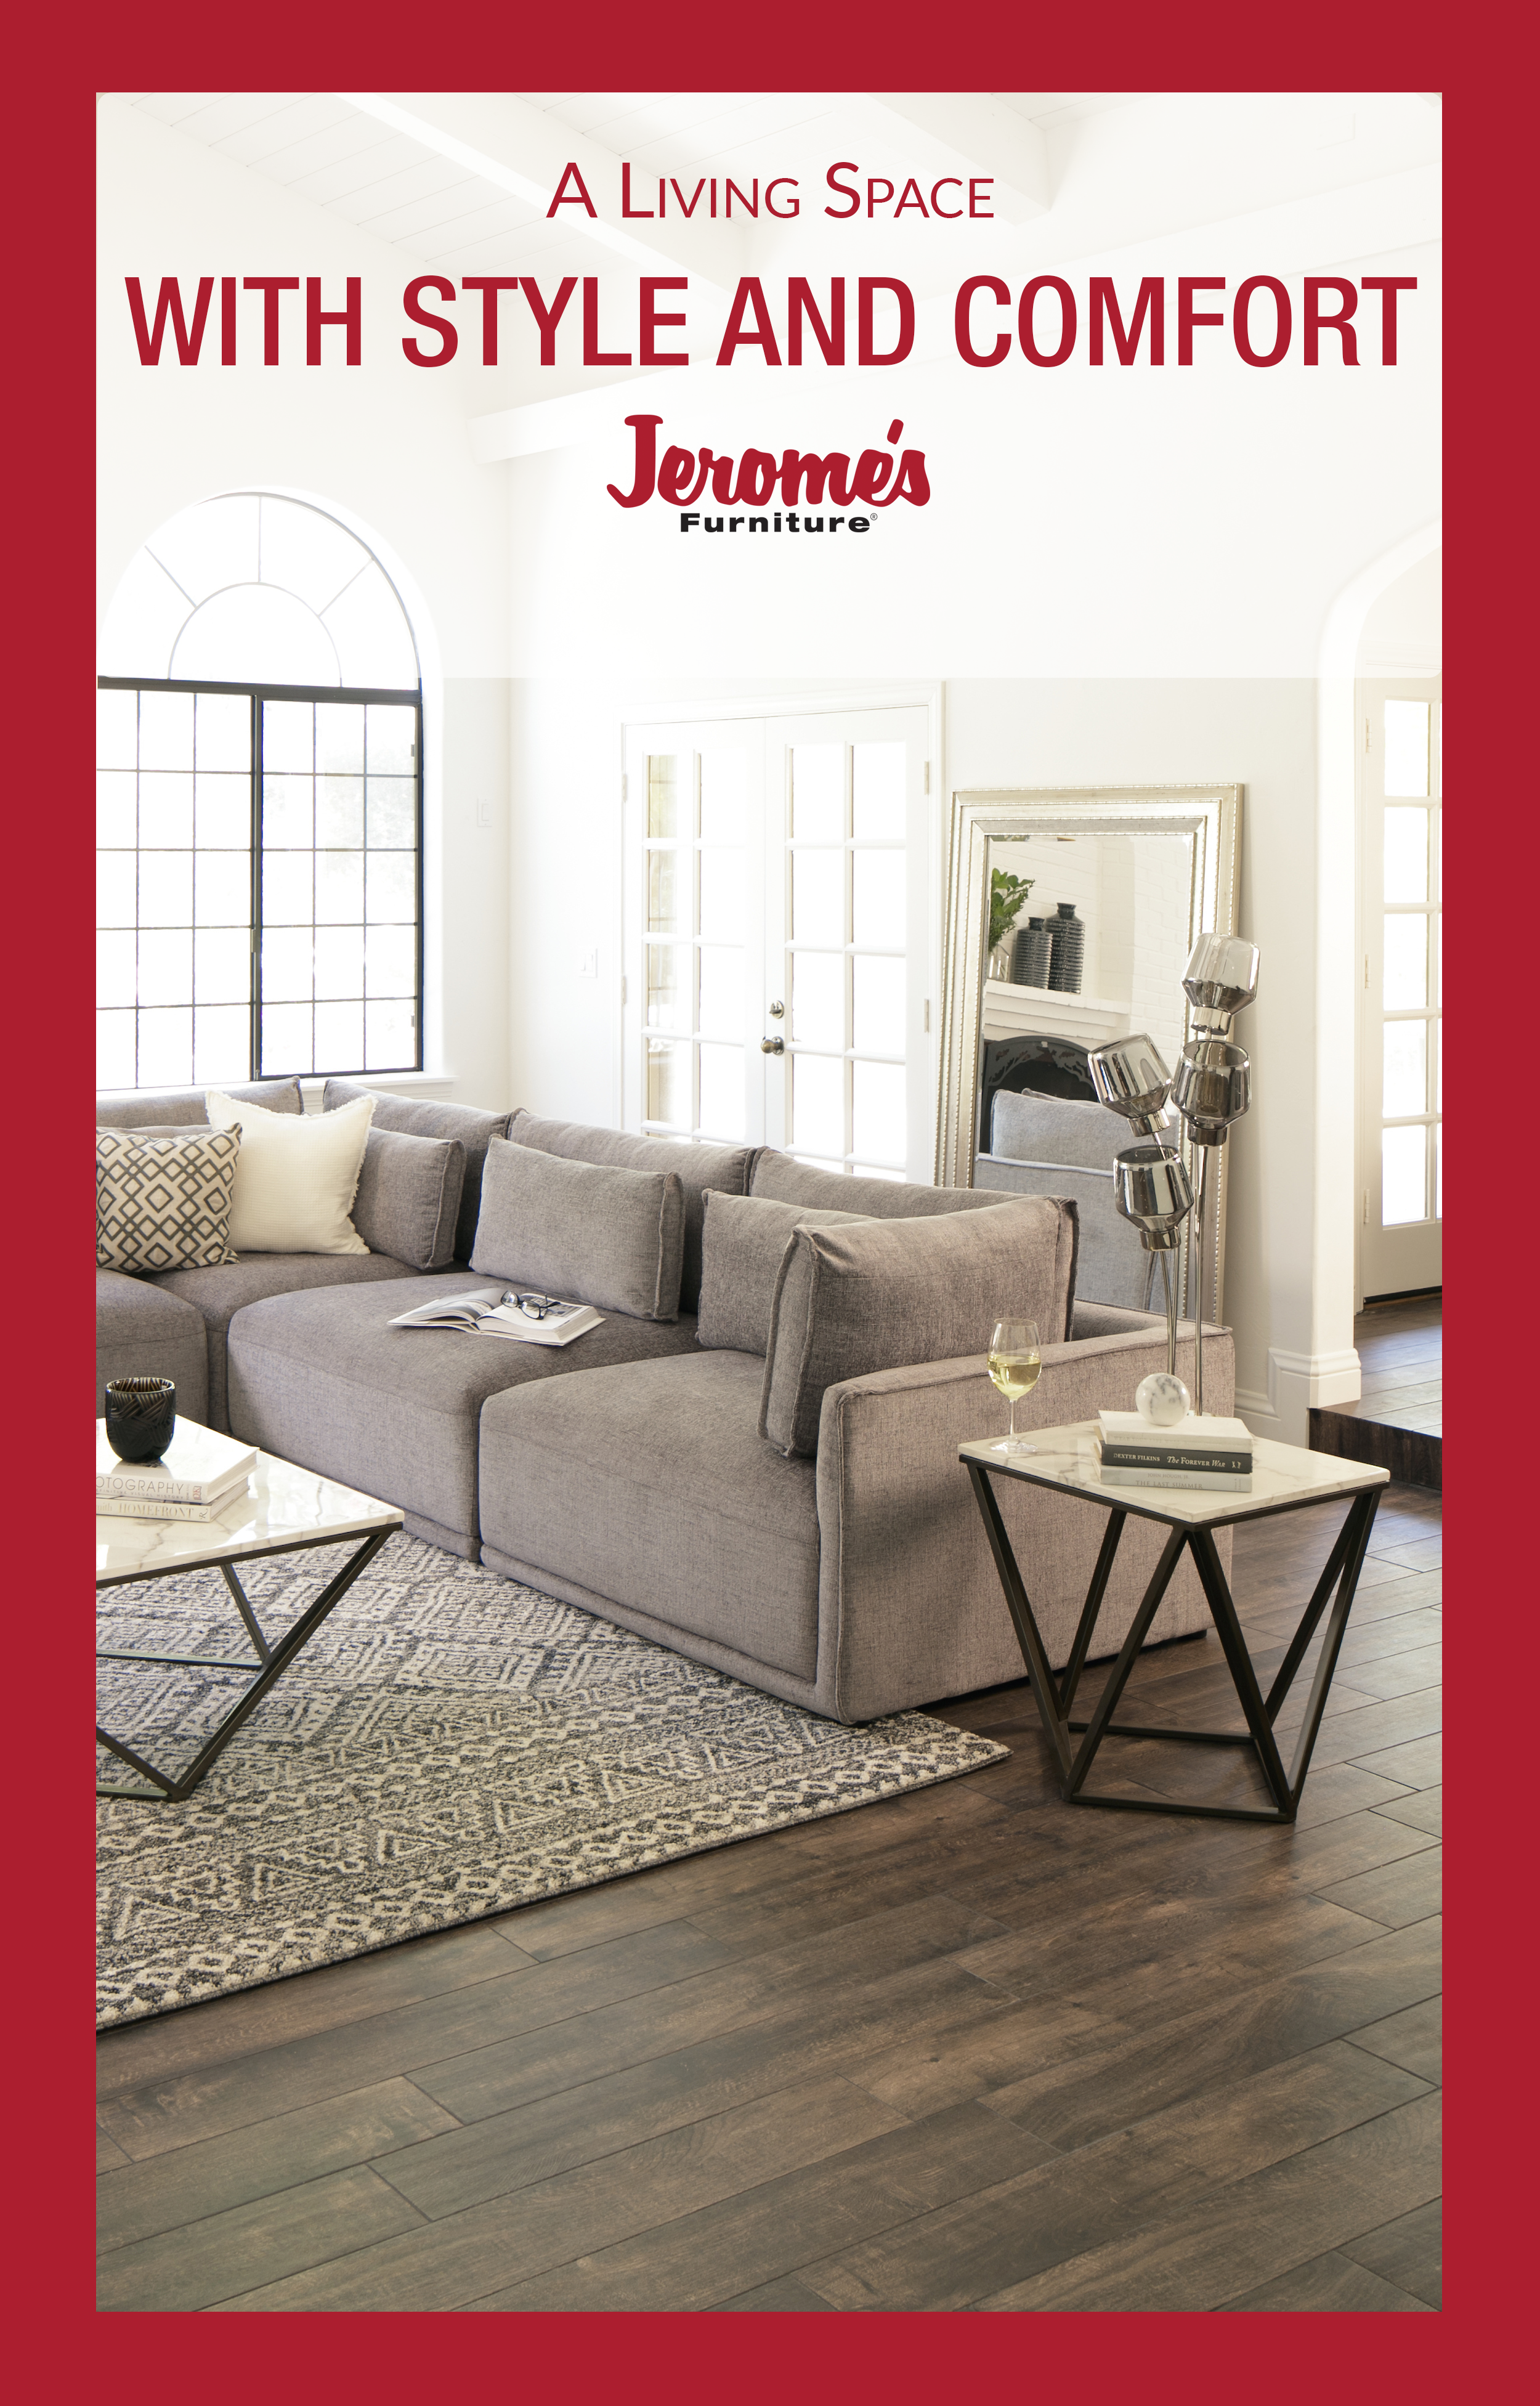 A Living Space Can Be Both Stylish And Comfortable Affordable